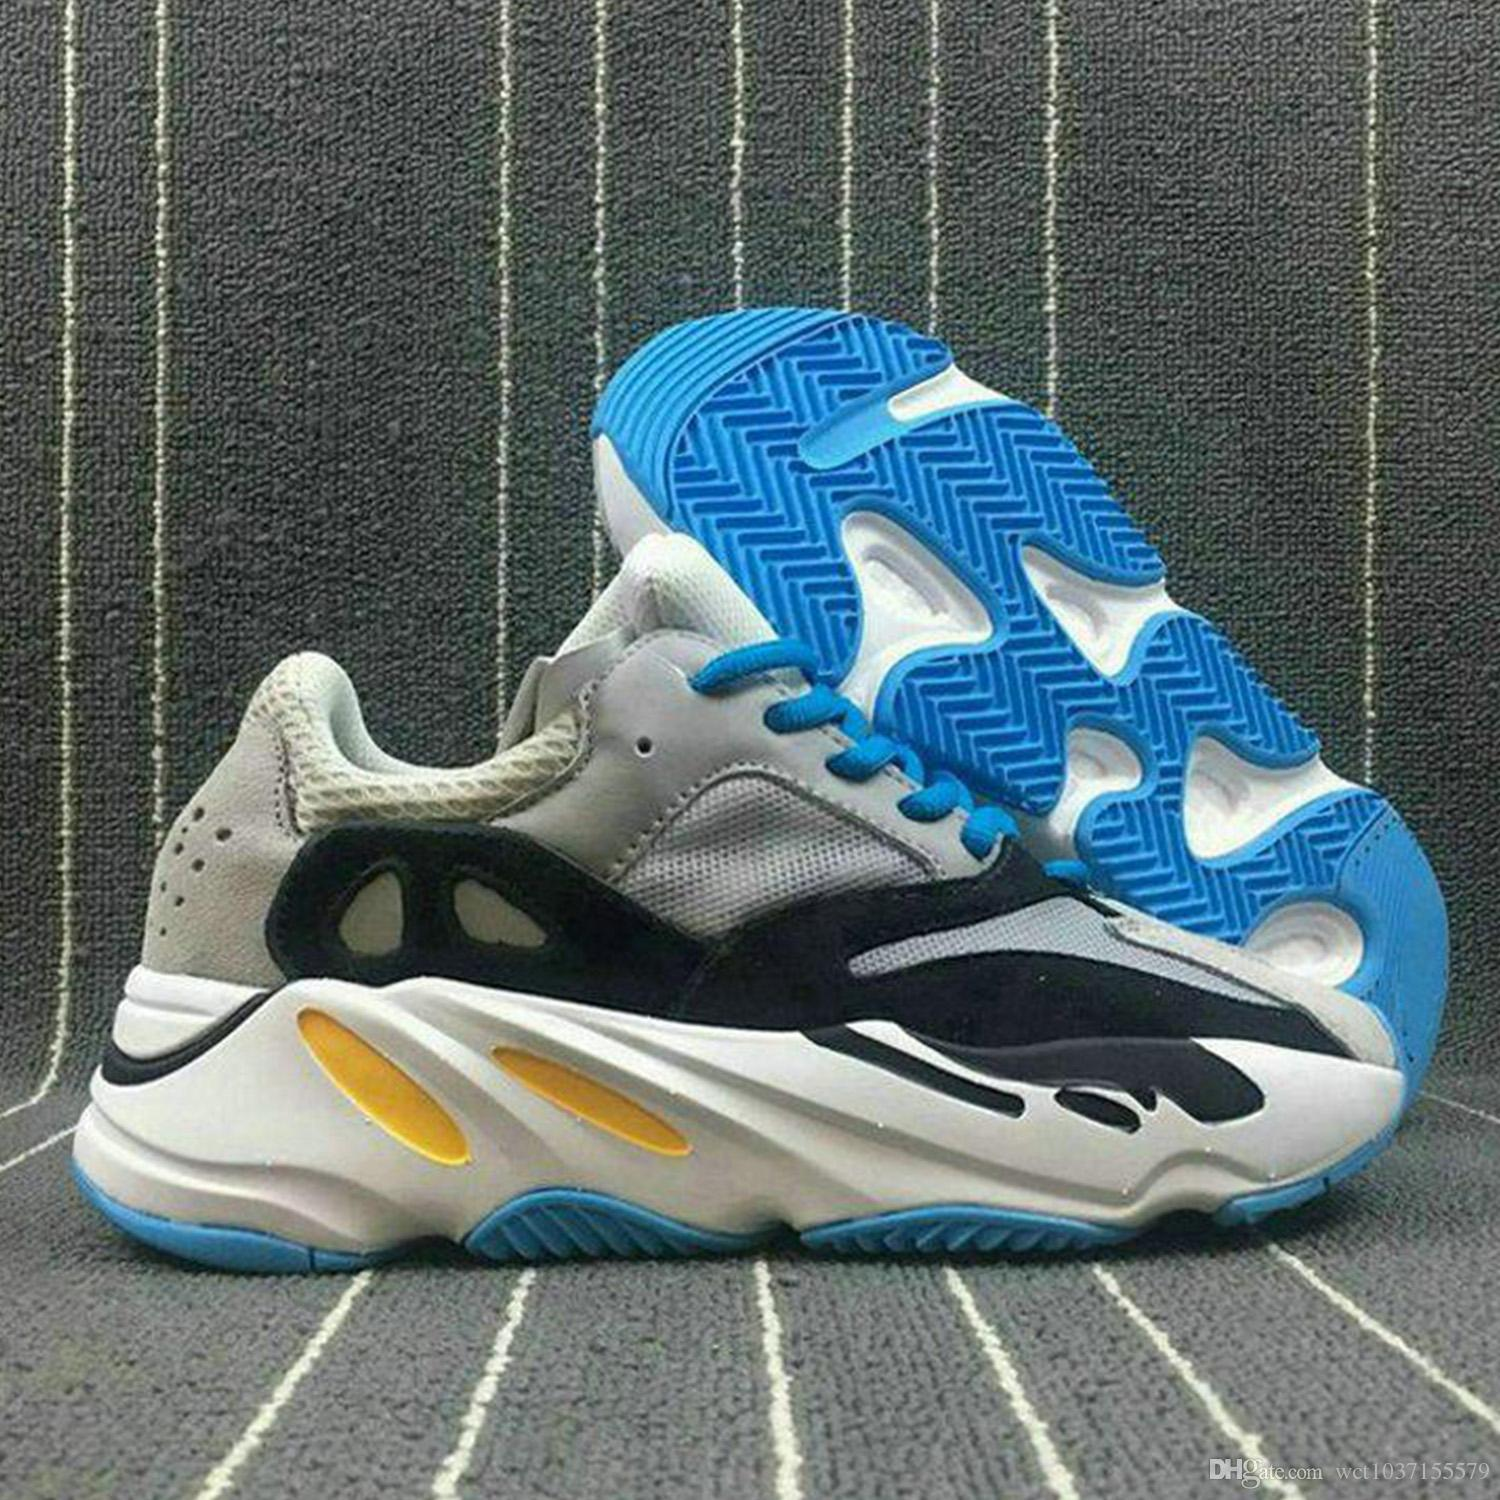 4d3ba2c99 700 Runner 2018 New Kanye West Boost Wave Runner 700 Boost Mens Women Boost  Sports Running Sneakers Shoes Eur 36 46 Shoe Shops Running Shoe From ...